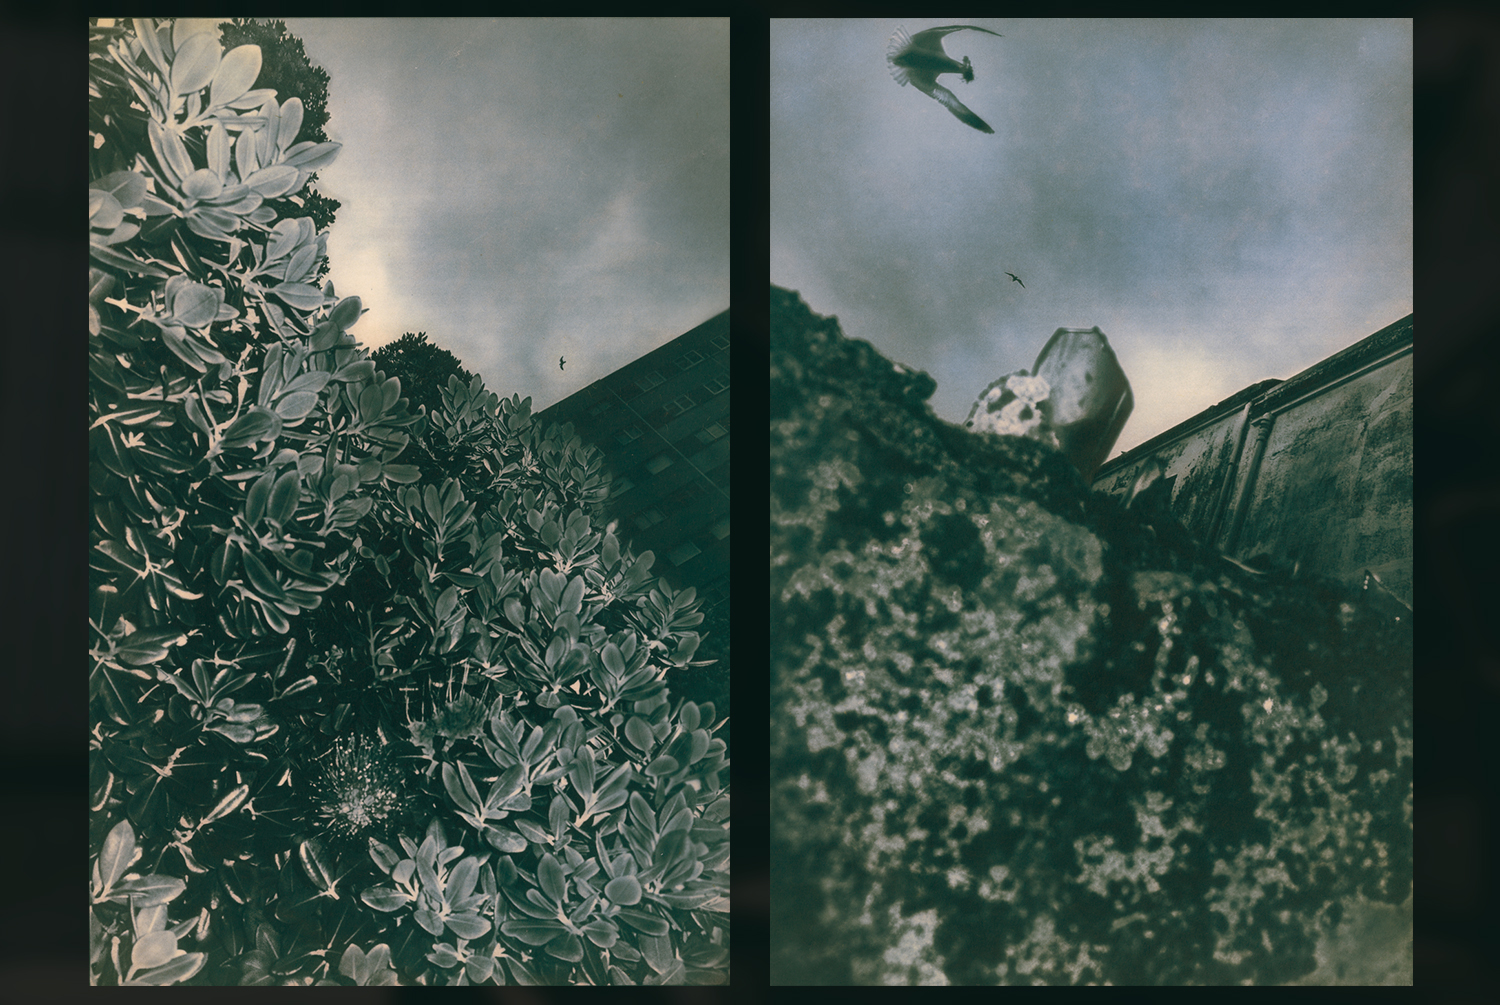 © Teyé Taejay Lee (A Coruña, Spain) | All That Fall Has Wings